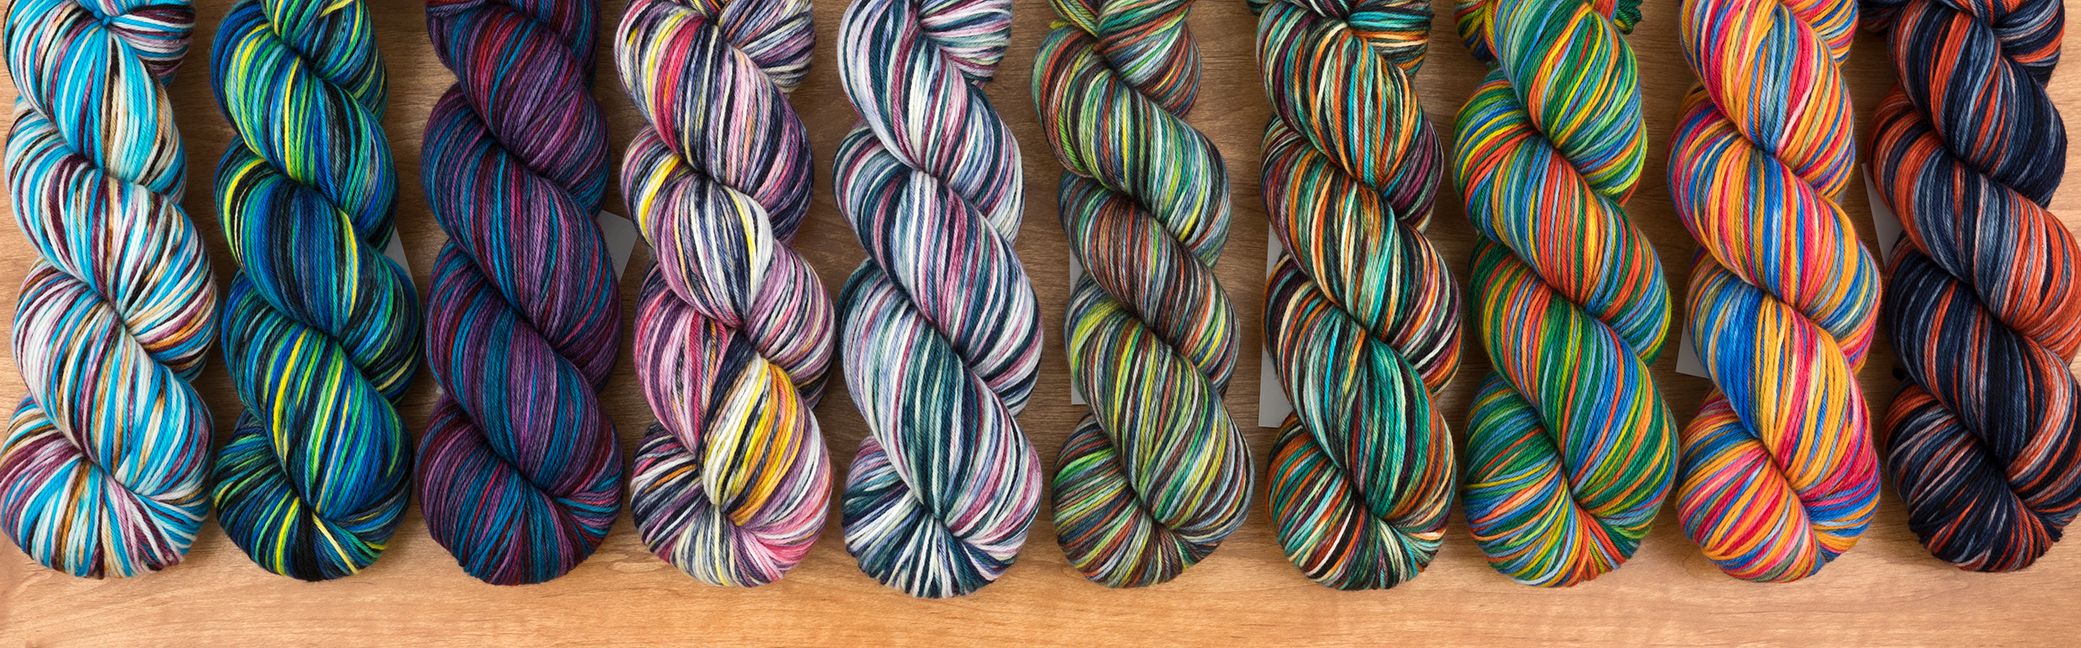 indie dyer ethereal fibers